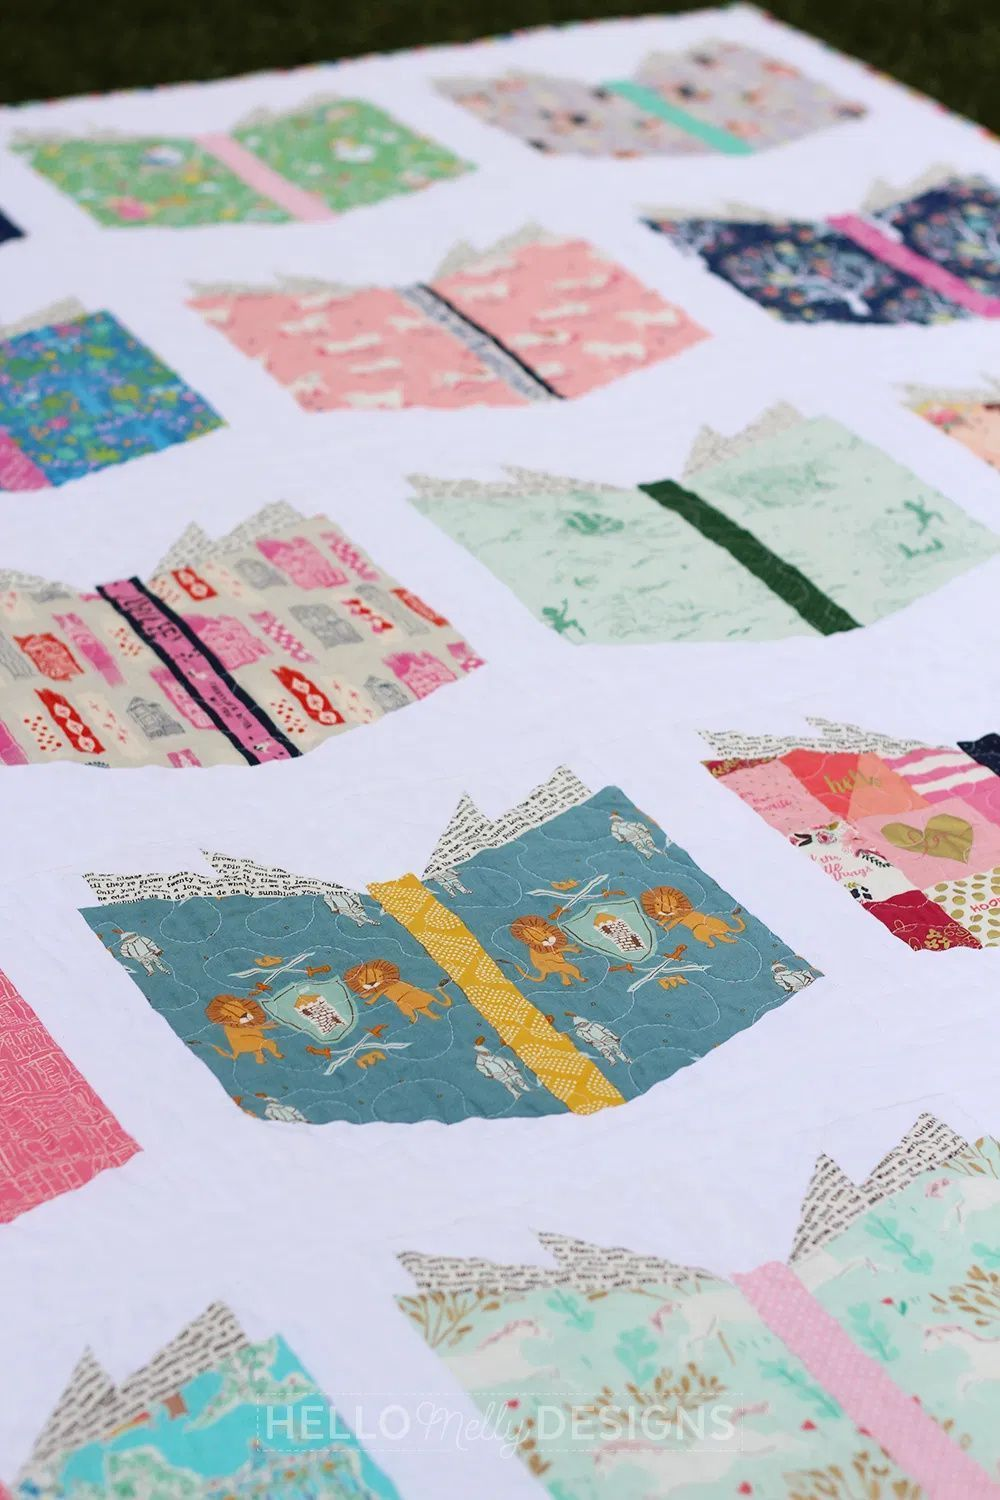 Book Nerd Quilt Sewing Projects For The Home Christmas Craft Ideas Quilts Book Quilt Quilting Crafts